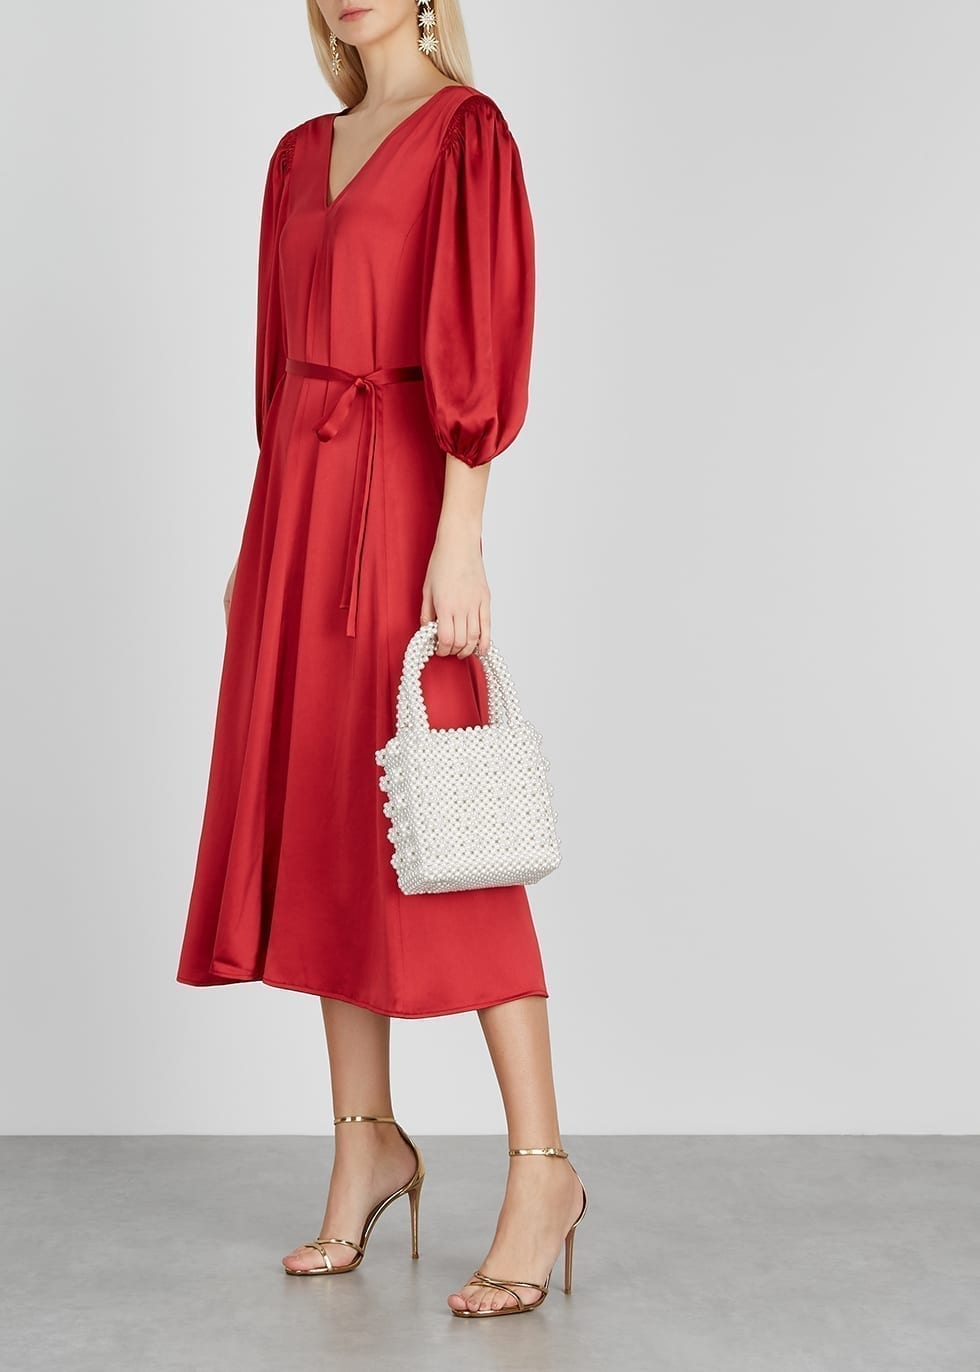 STINE GOYA Marlen Red Satin Midi Dress